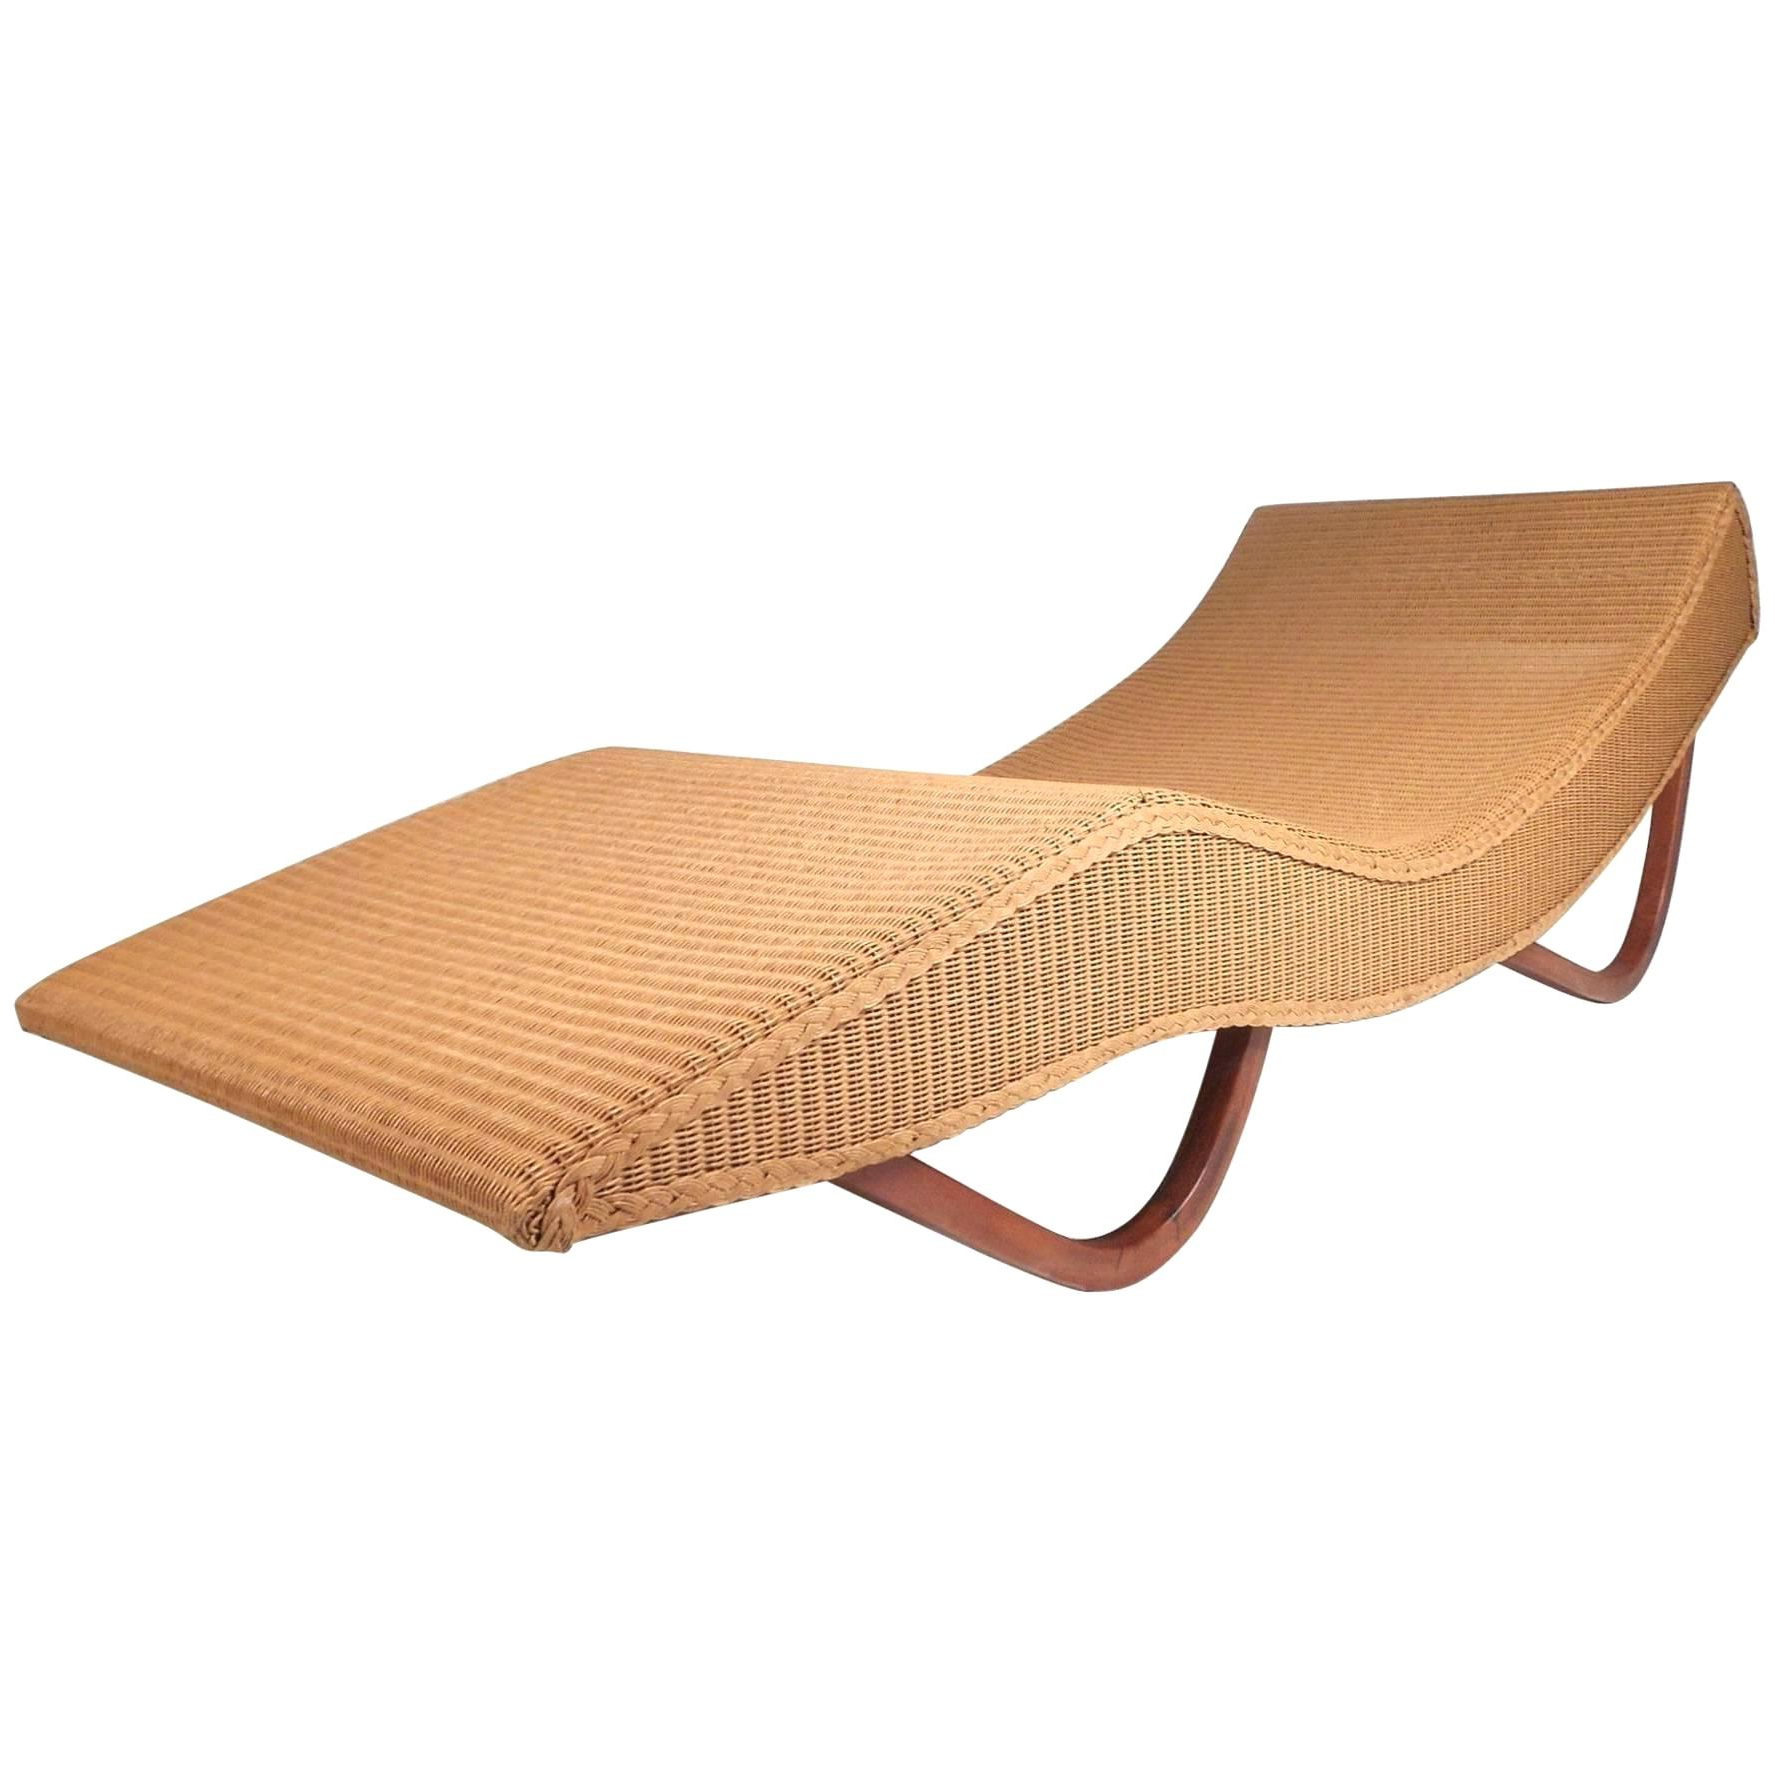 Most Current Kauai Outdoor Wicker Chaise Lounges Inside Loom Wicker Chaise For Sale Lounge With Arms Id F (View 18 of 25)